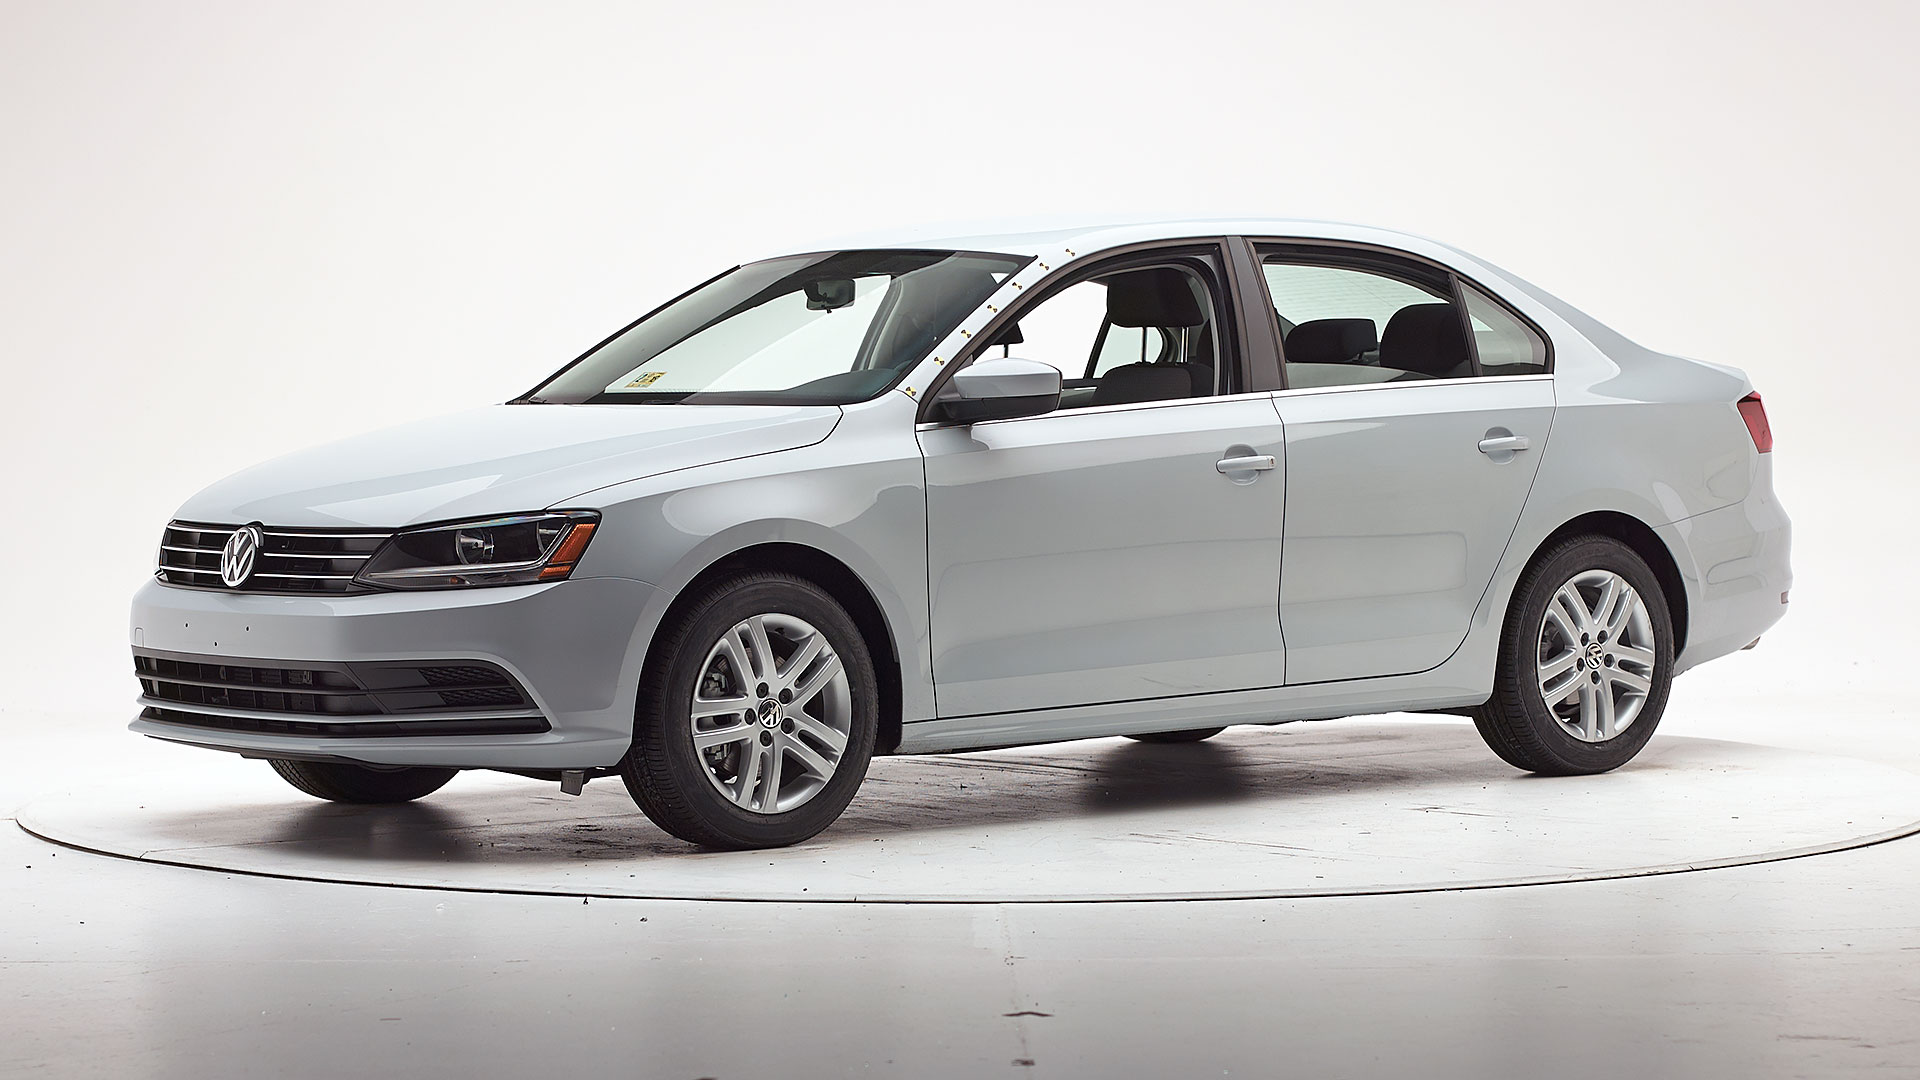 2018 Volkswagen Jetta 4-door sedan